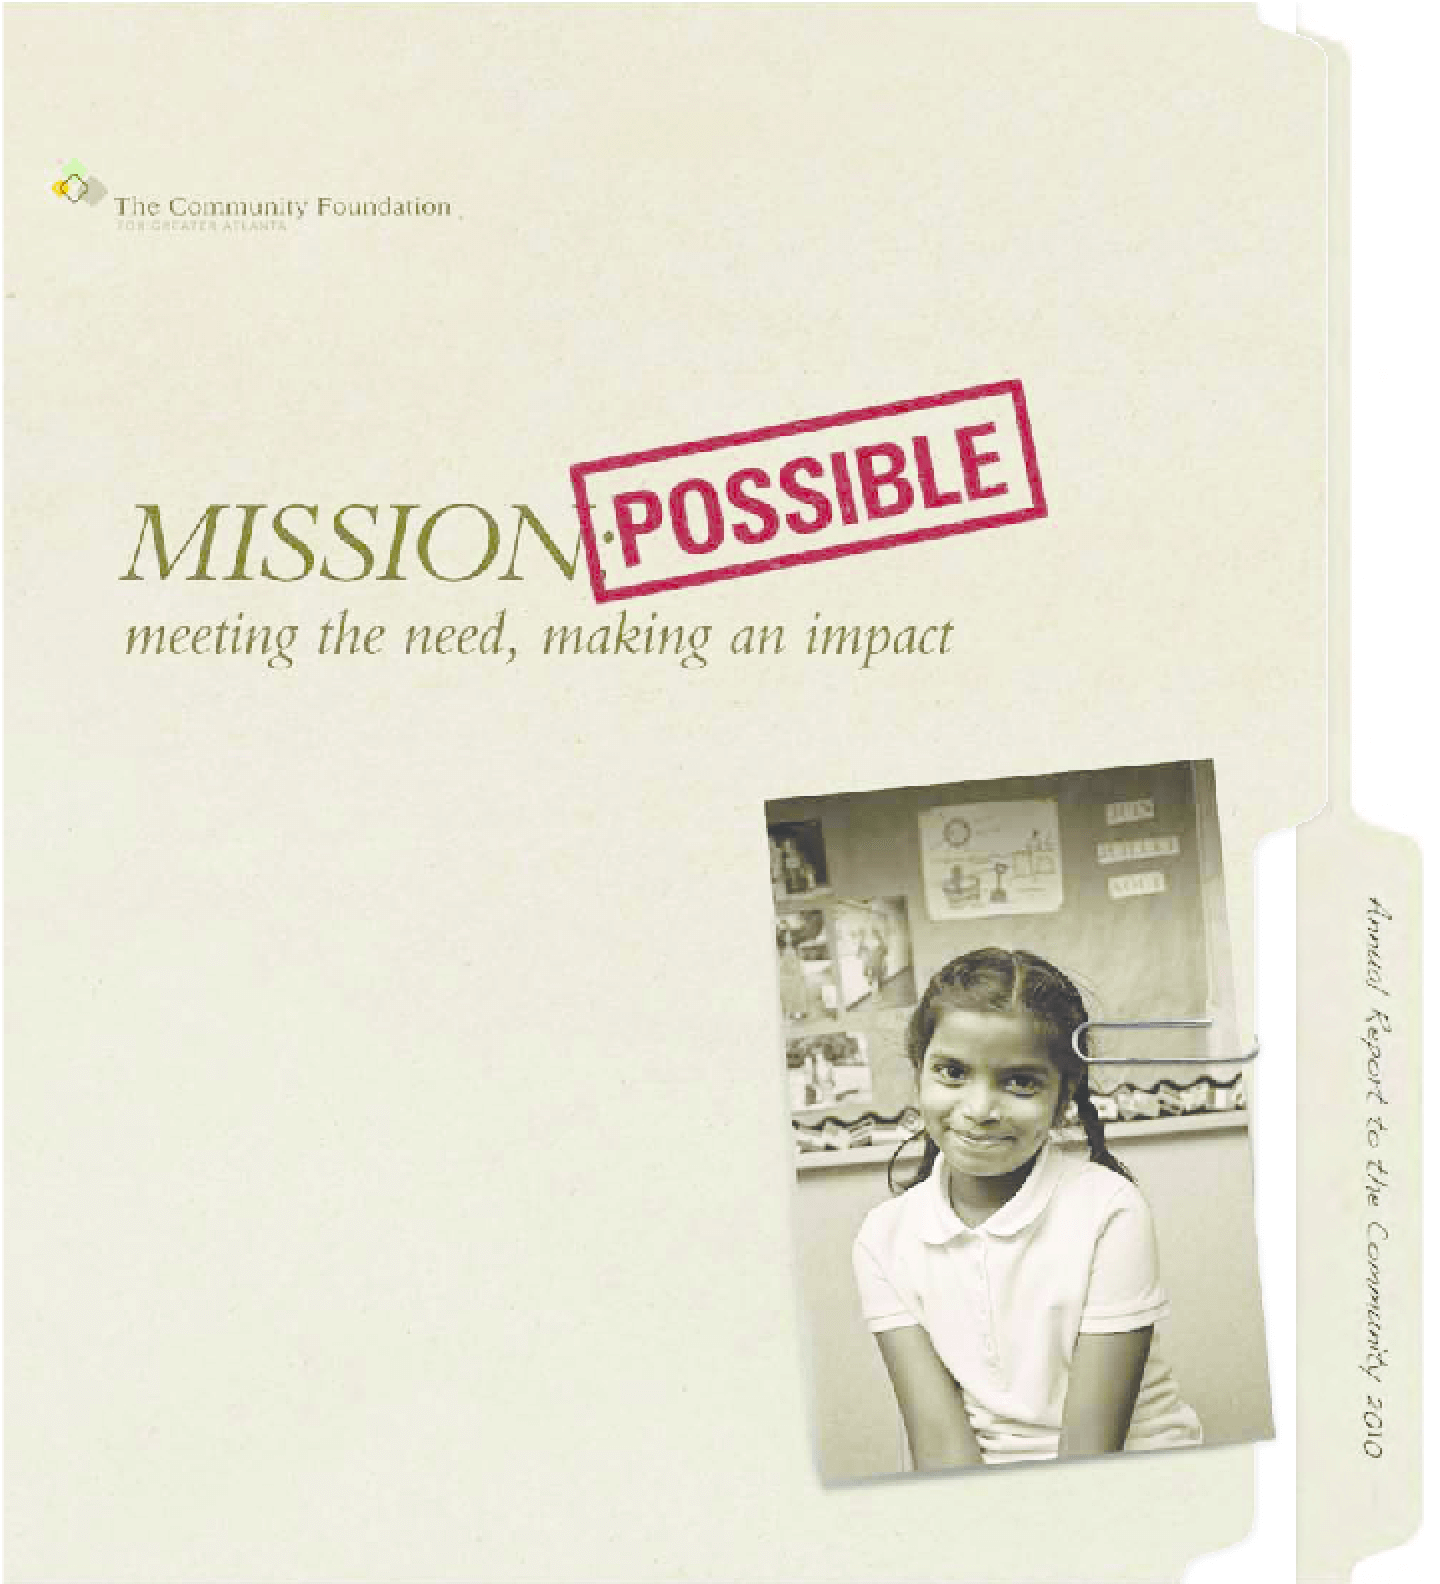 Community Foundation for Greater Atlanta 2010 Annual Report: Mission: Possible: Meeting the Need, Making an Impact